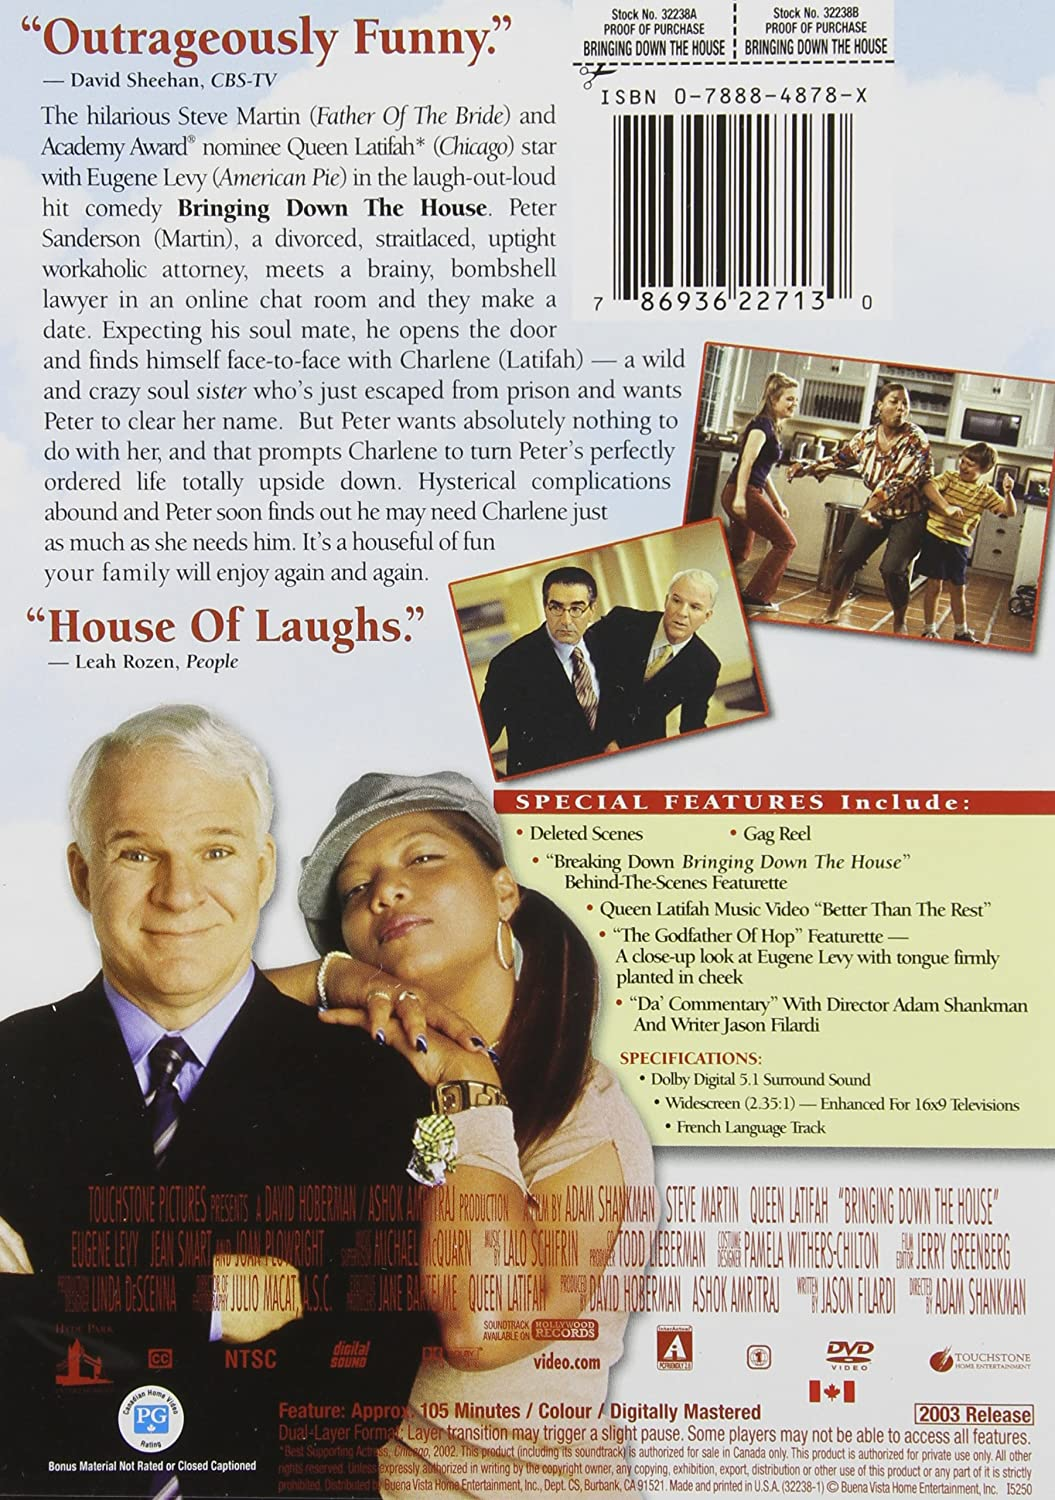 Amazon.com: Bringing Down The House (Widescreen Edition): Steve Martin,  Queen Latifah, Eugene Levy, Joan Plowright, Jean Smart, Kimberly J. Brown,  ...